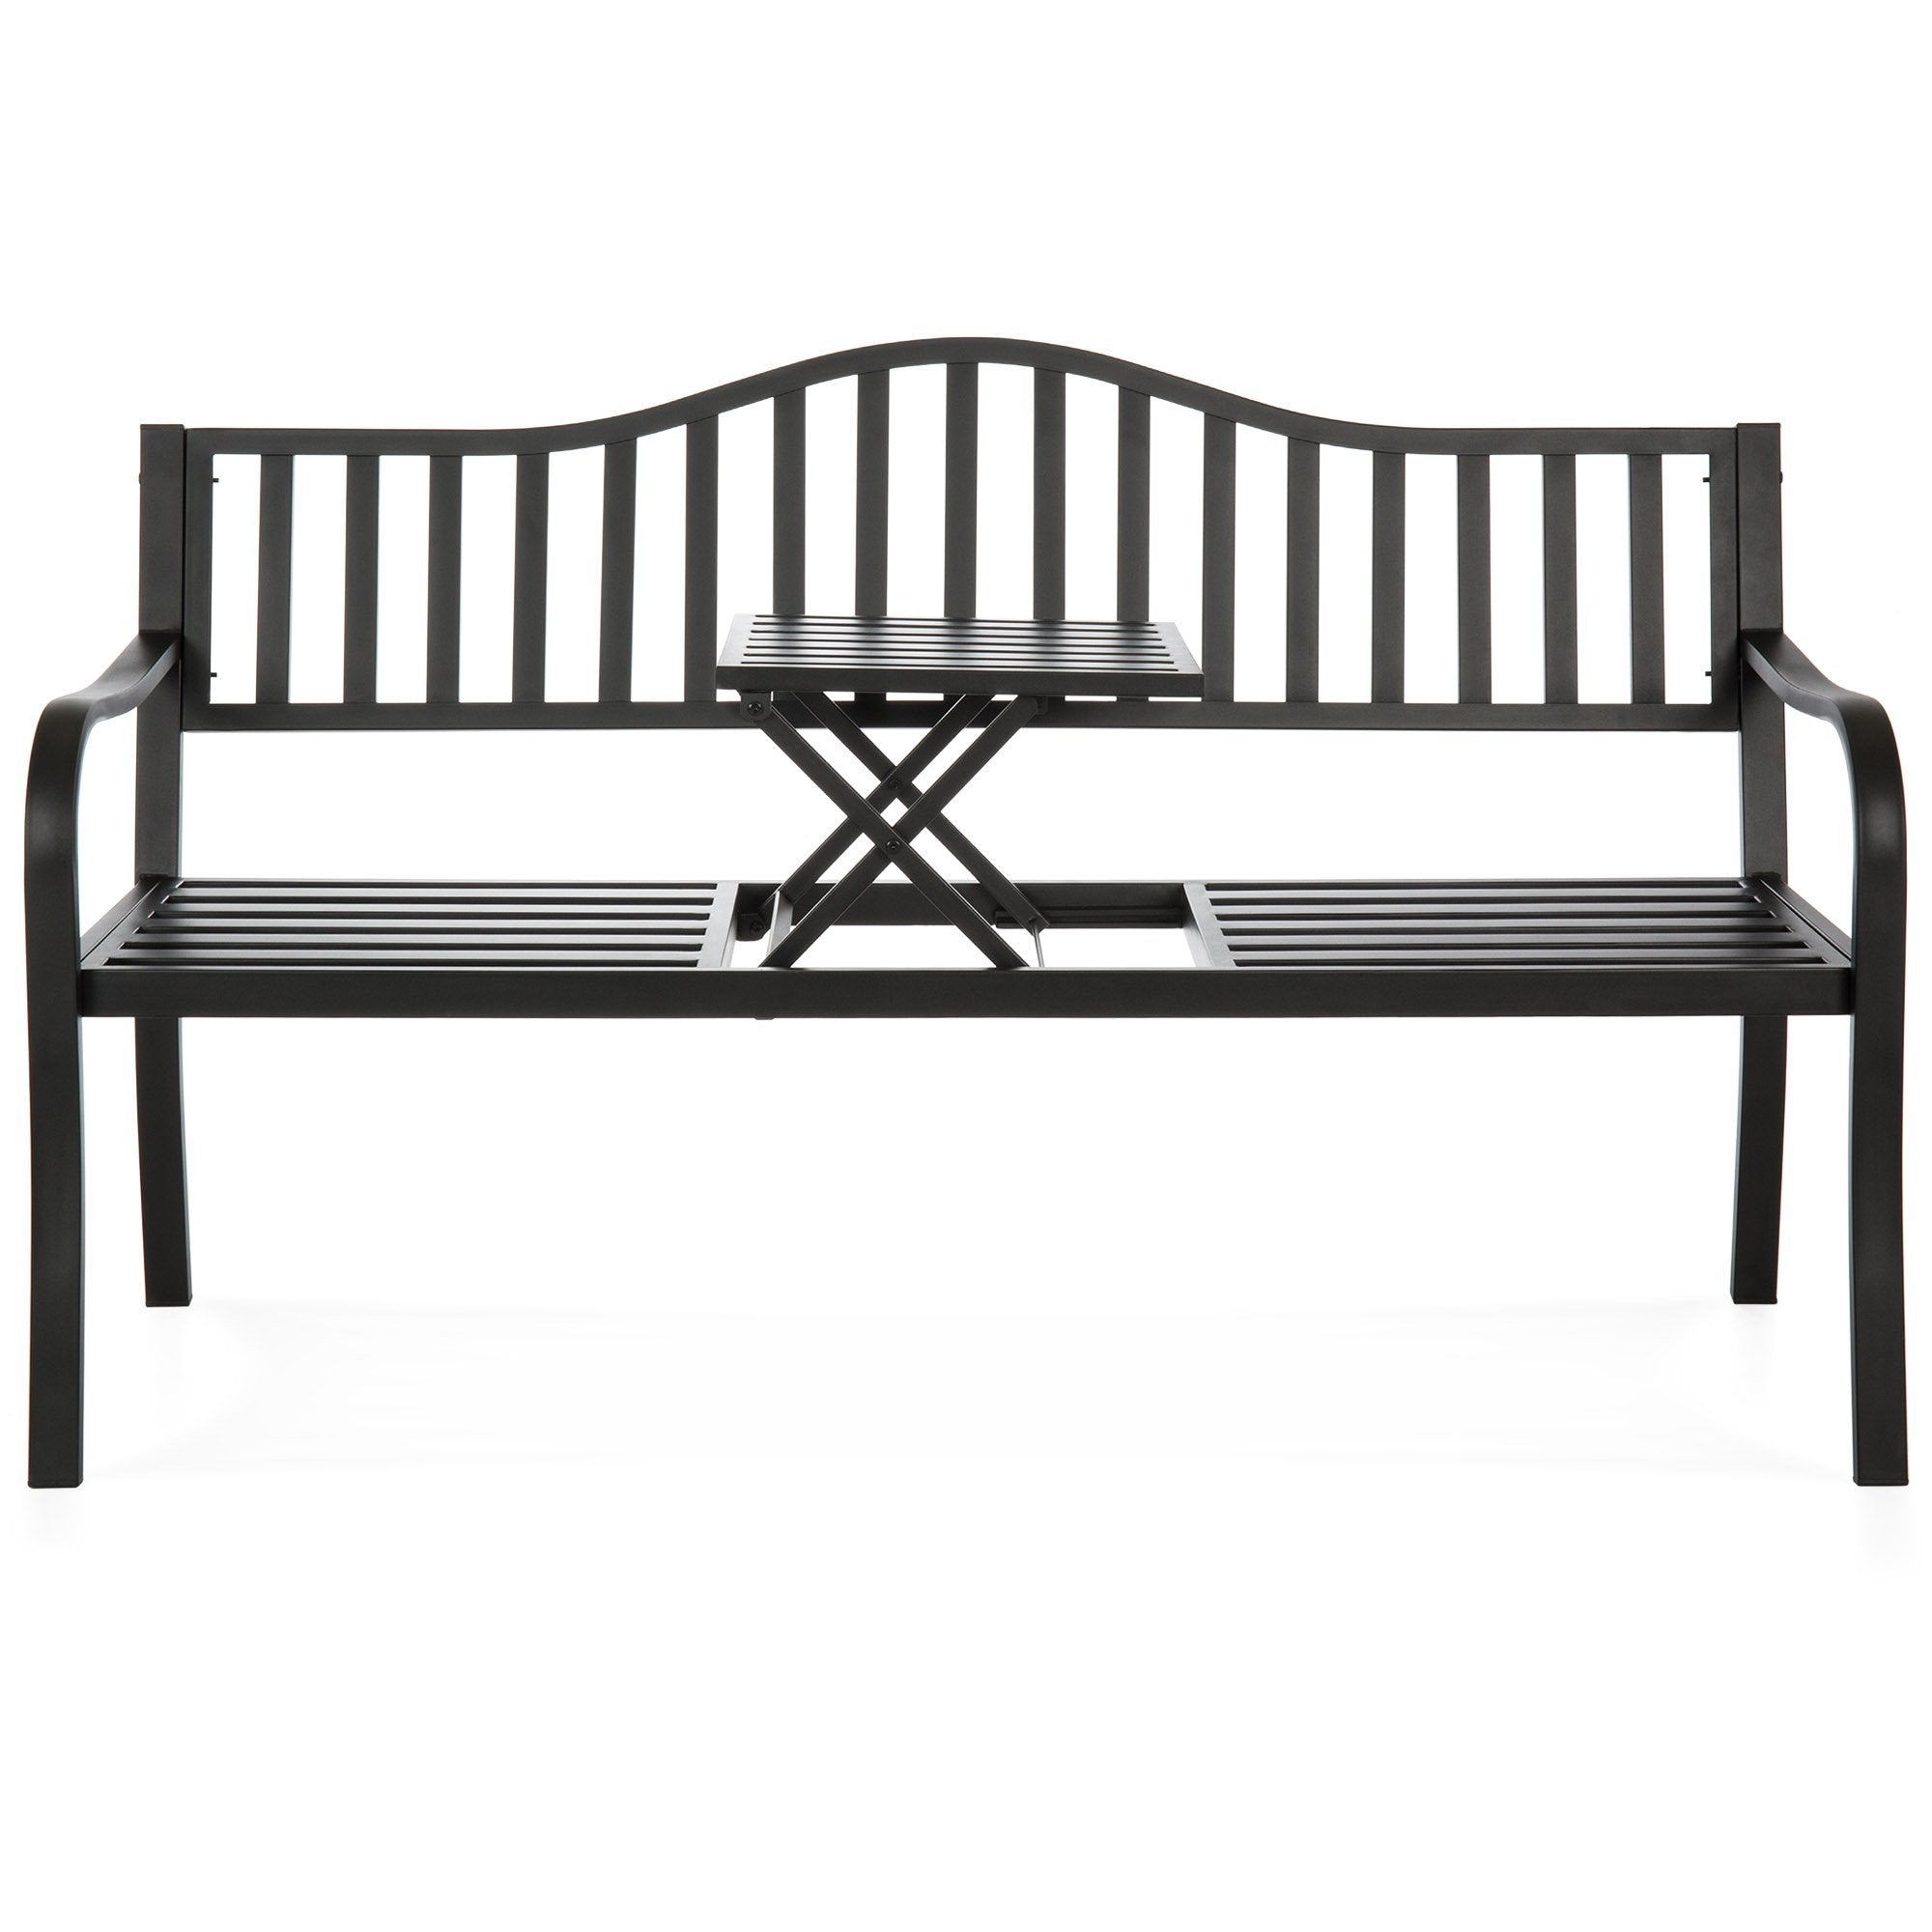 Outdoor Cast Iron Garden Patio Double Bench w/ Pullout Middle Table